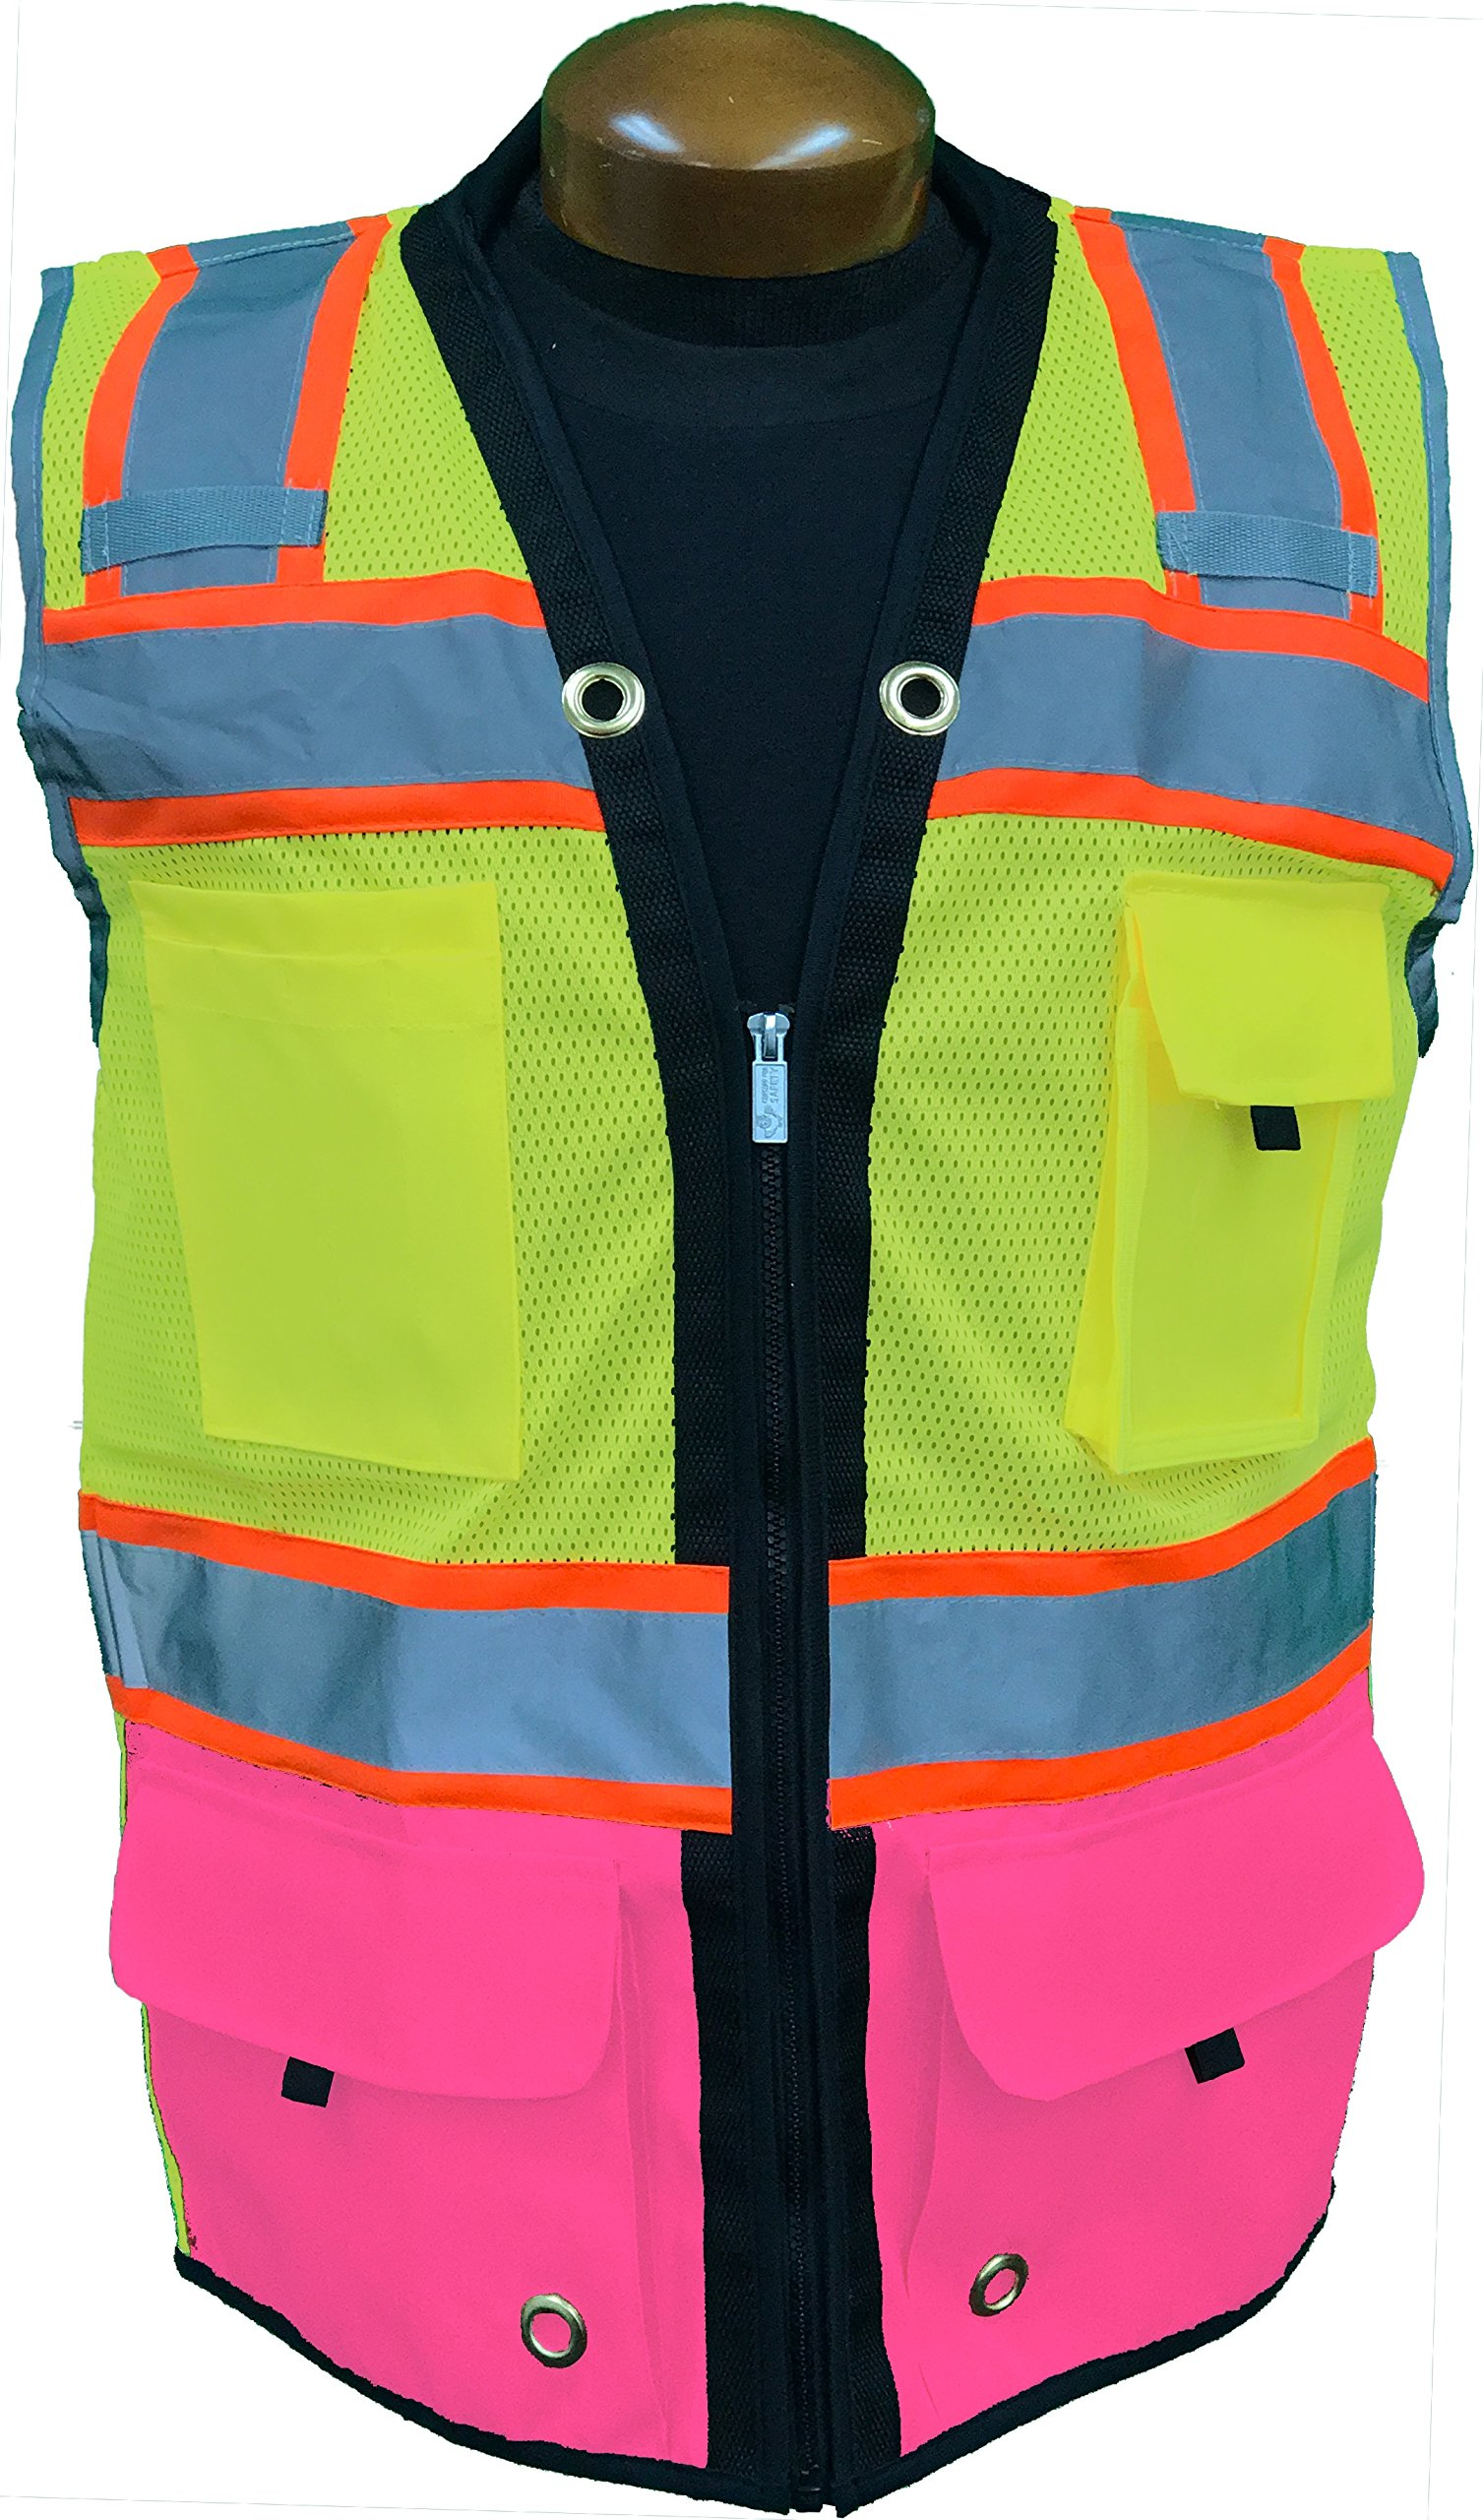 SHINE BRIGHT SV544PK | Premium Surveyor's High Visibility Safety Vest | 2 Tone Lime/Pink with Reflective Strips |ANSI CLASS 2 |Soft and Breathable |Heavy Duty Zipper Front | Size Large